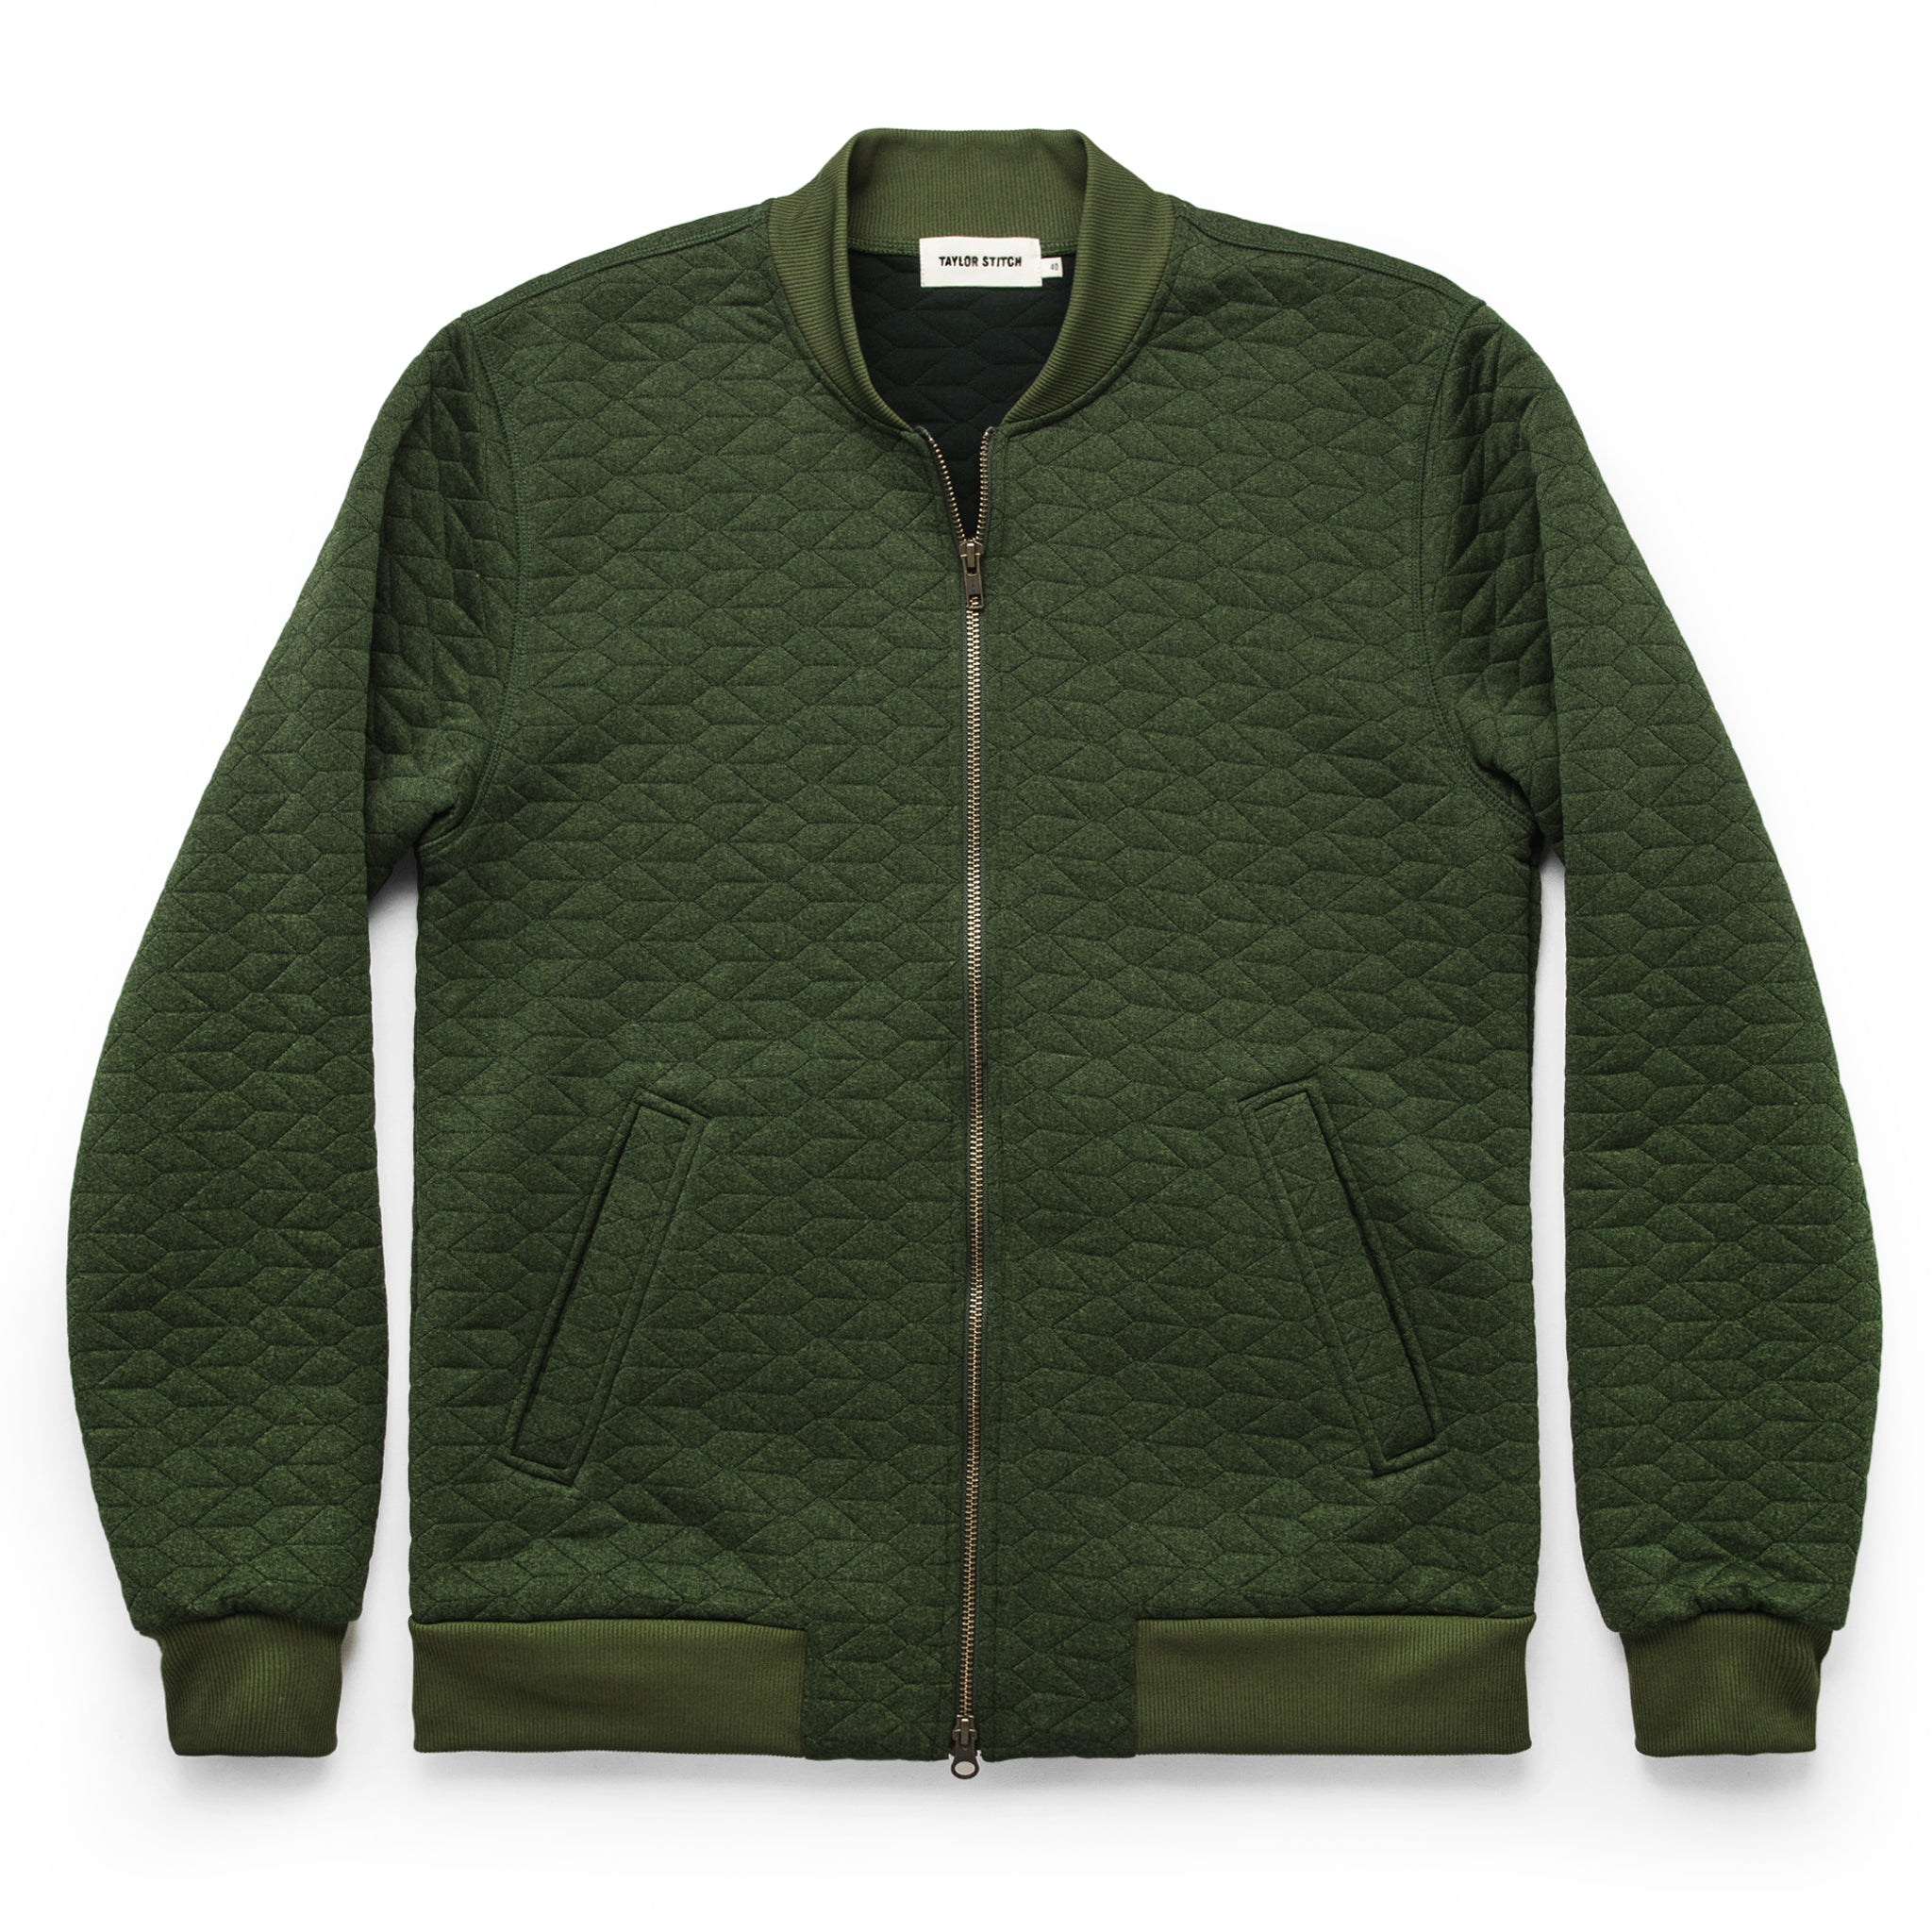 f62afc1cc The Inverness Bomber in Olive Knit Quilt